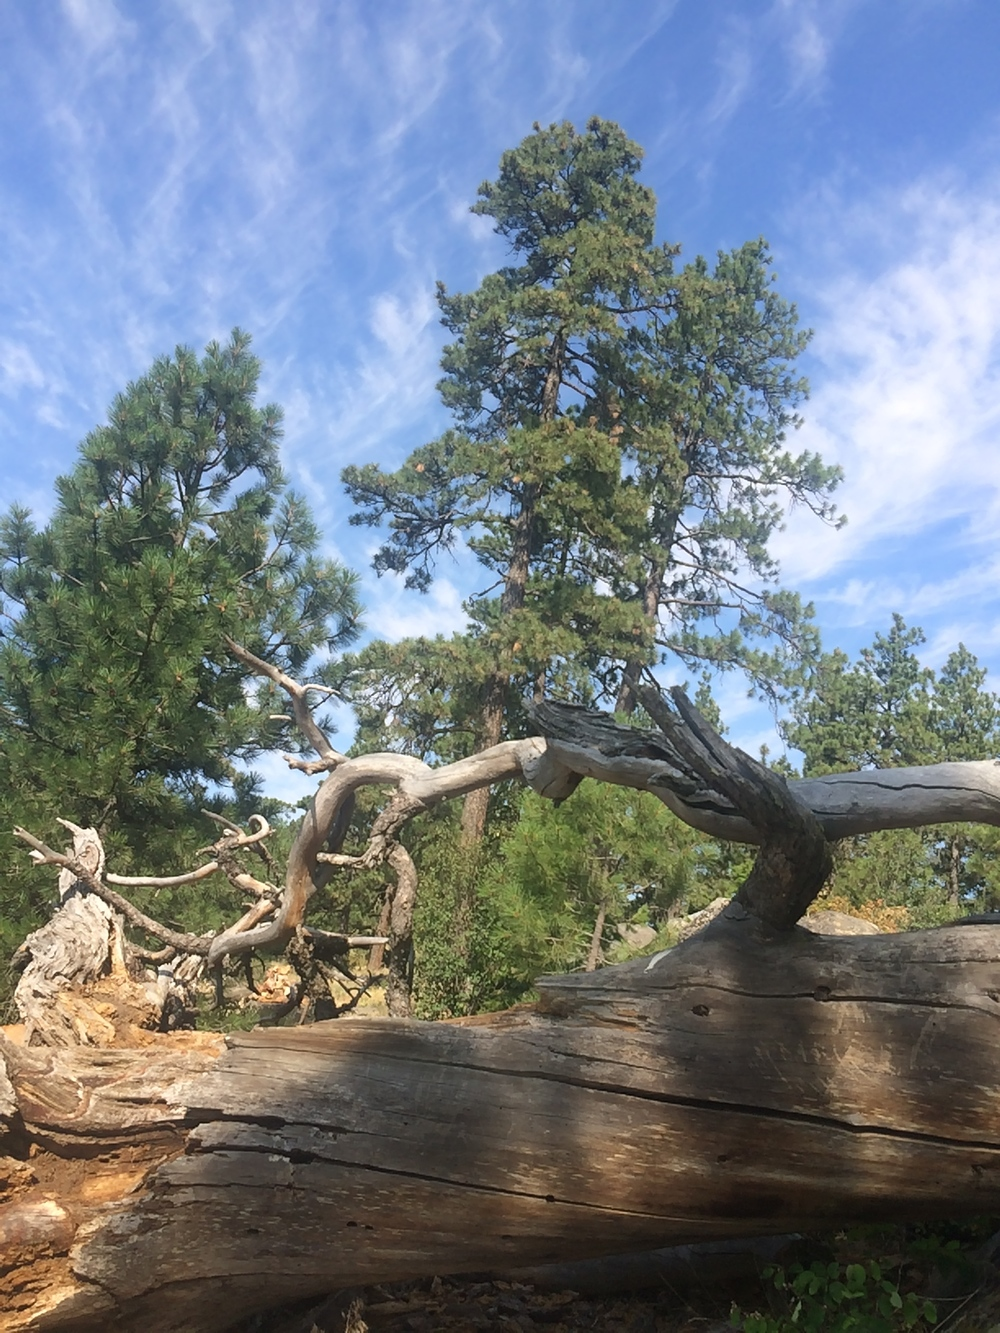 A fallen tree with crooked limbs illustrates the way which our life path winds in unexpected ways.  Worry not, you ARE on the right track.  Kamiak Butte Park, near Palouse, WA.